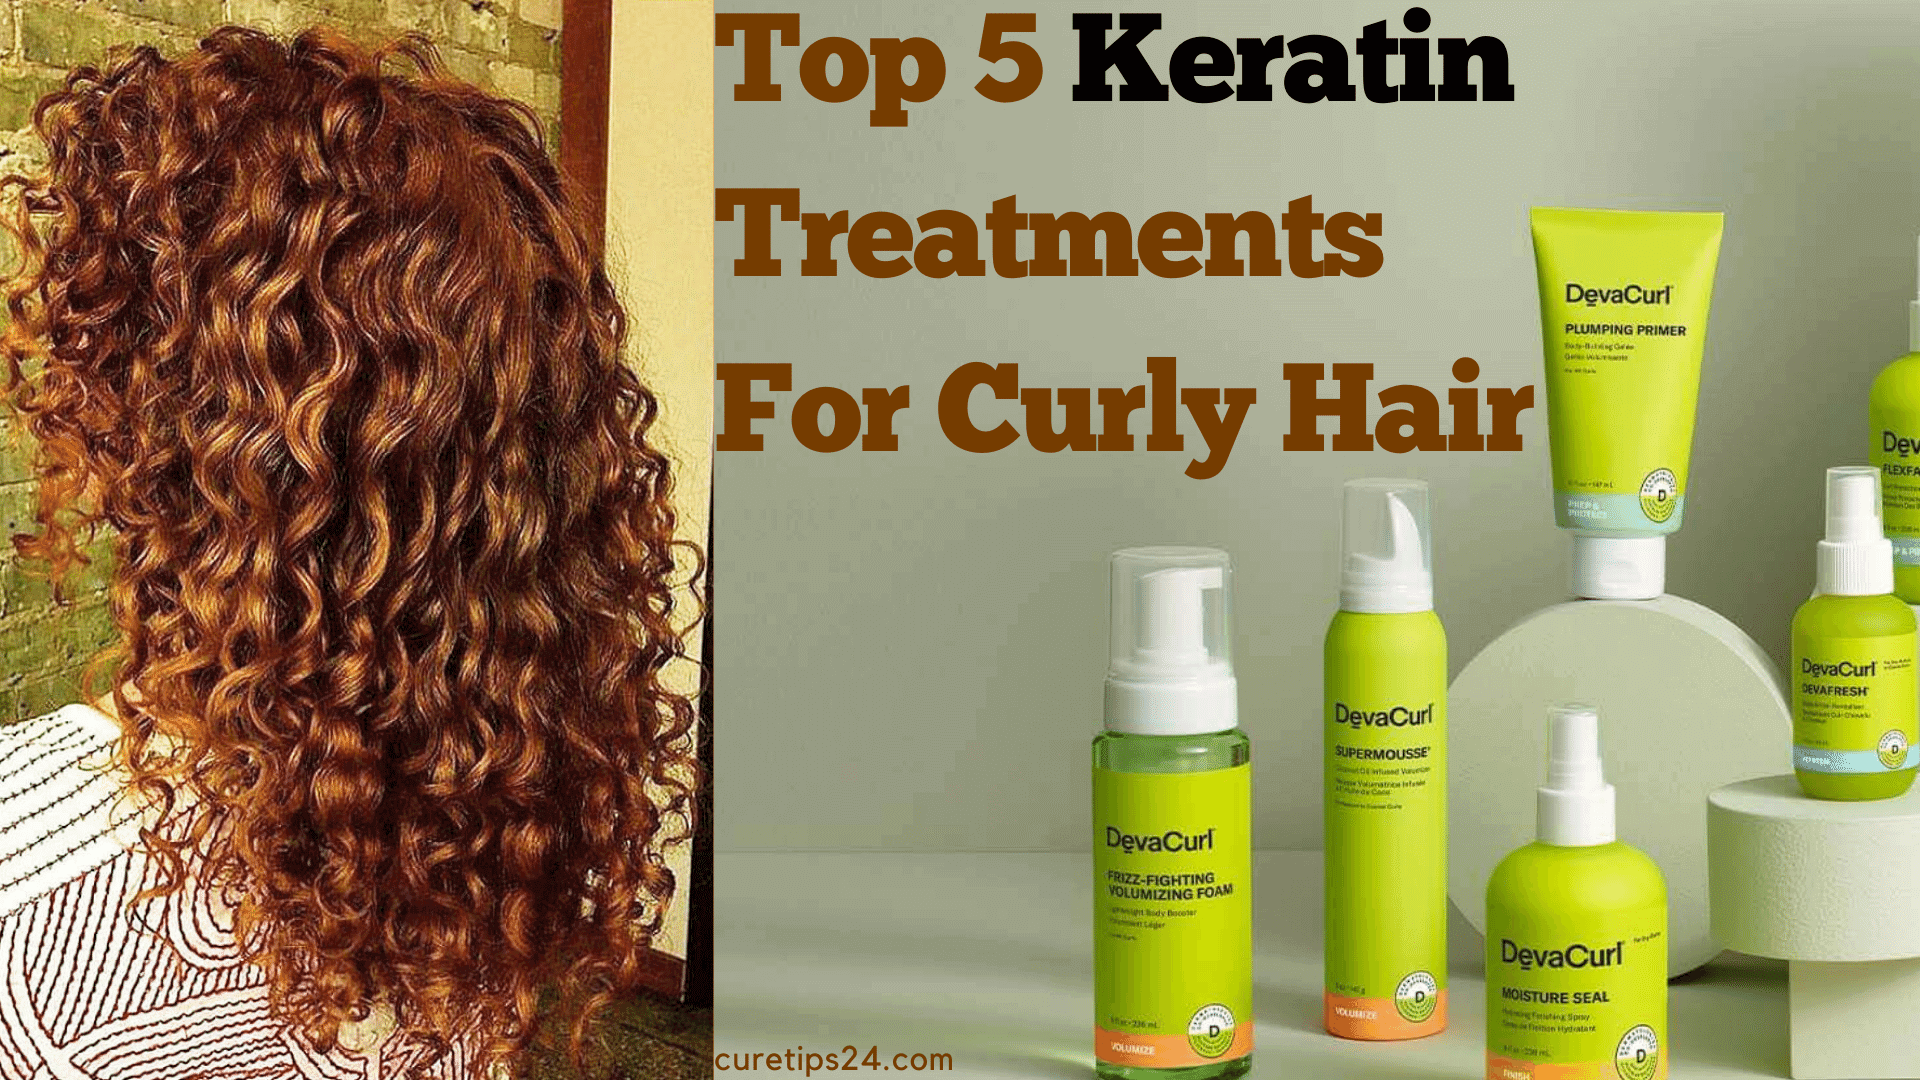 Top 5 Keratin Treatments For Curly Hair